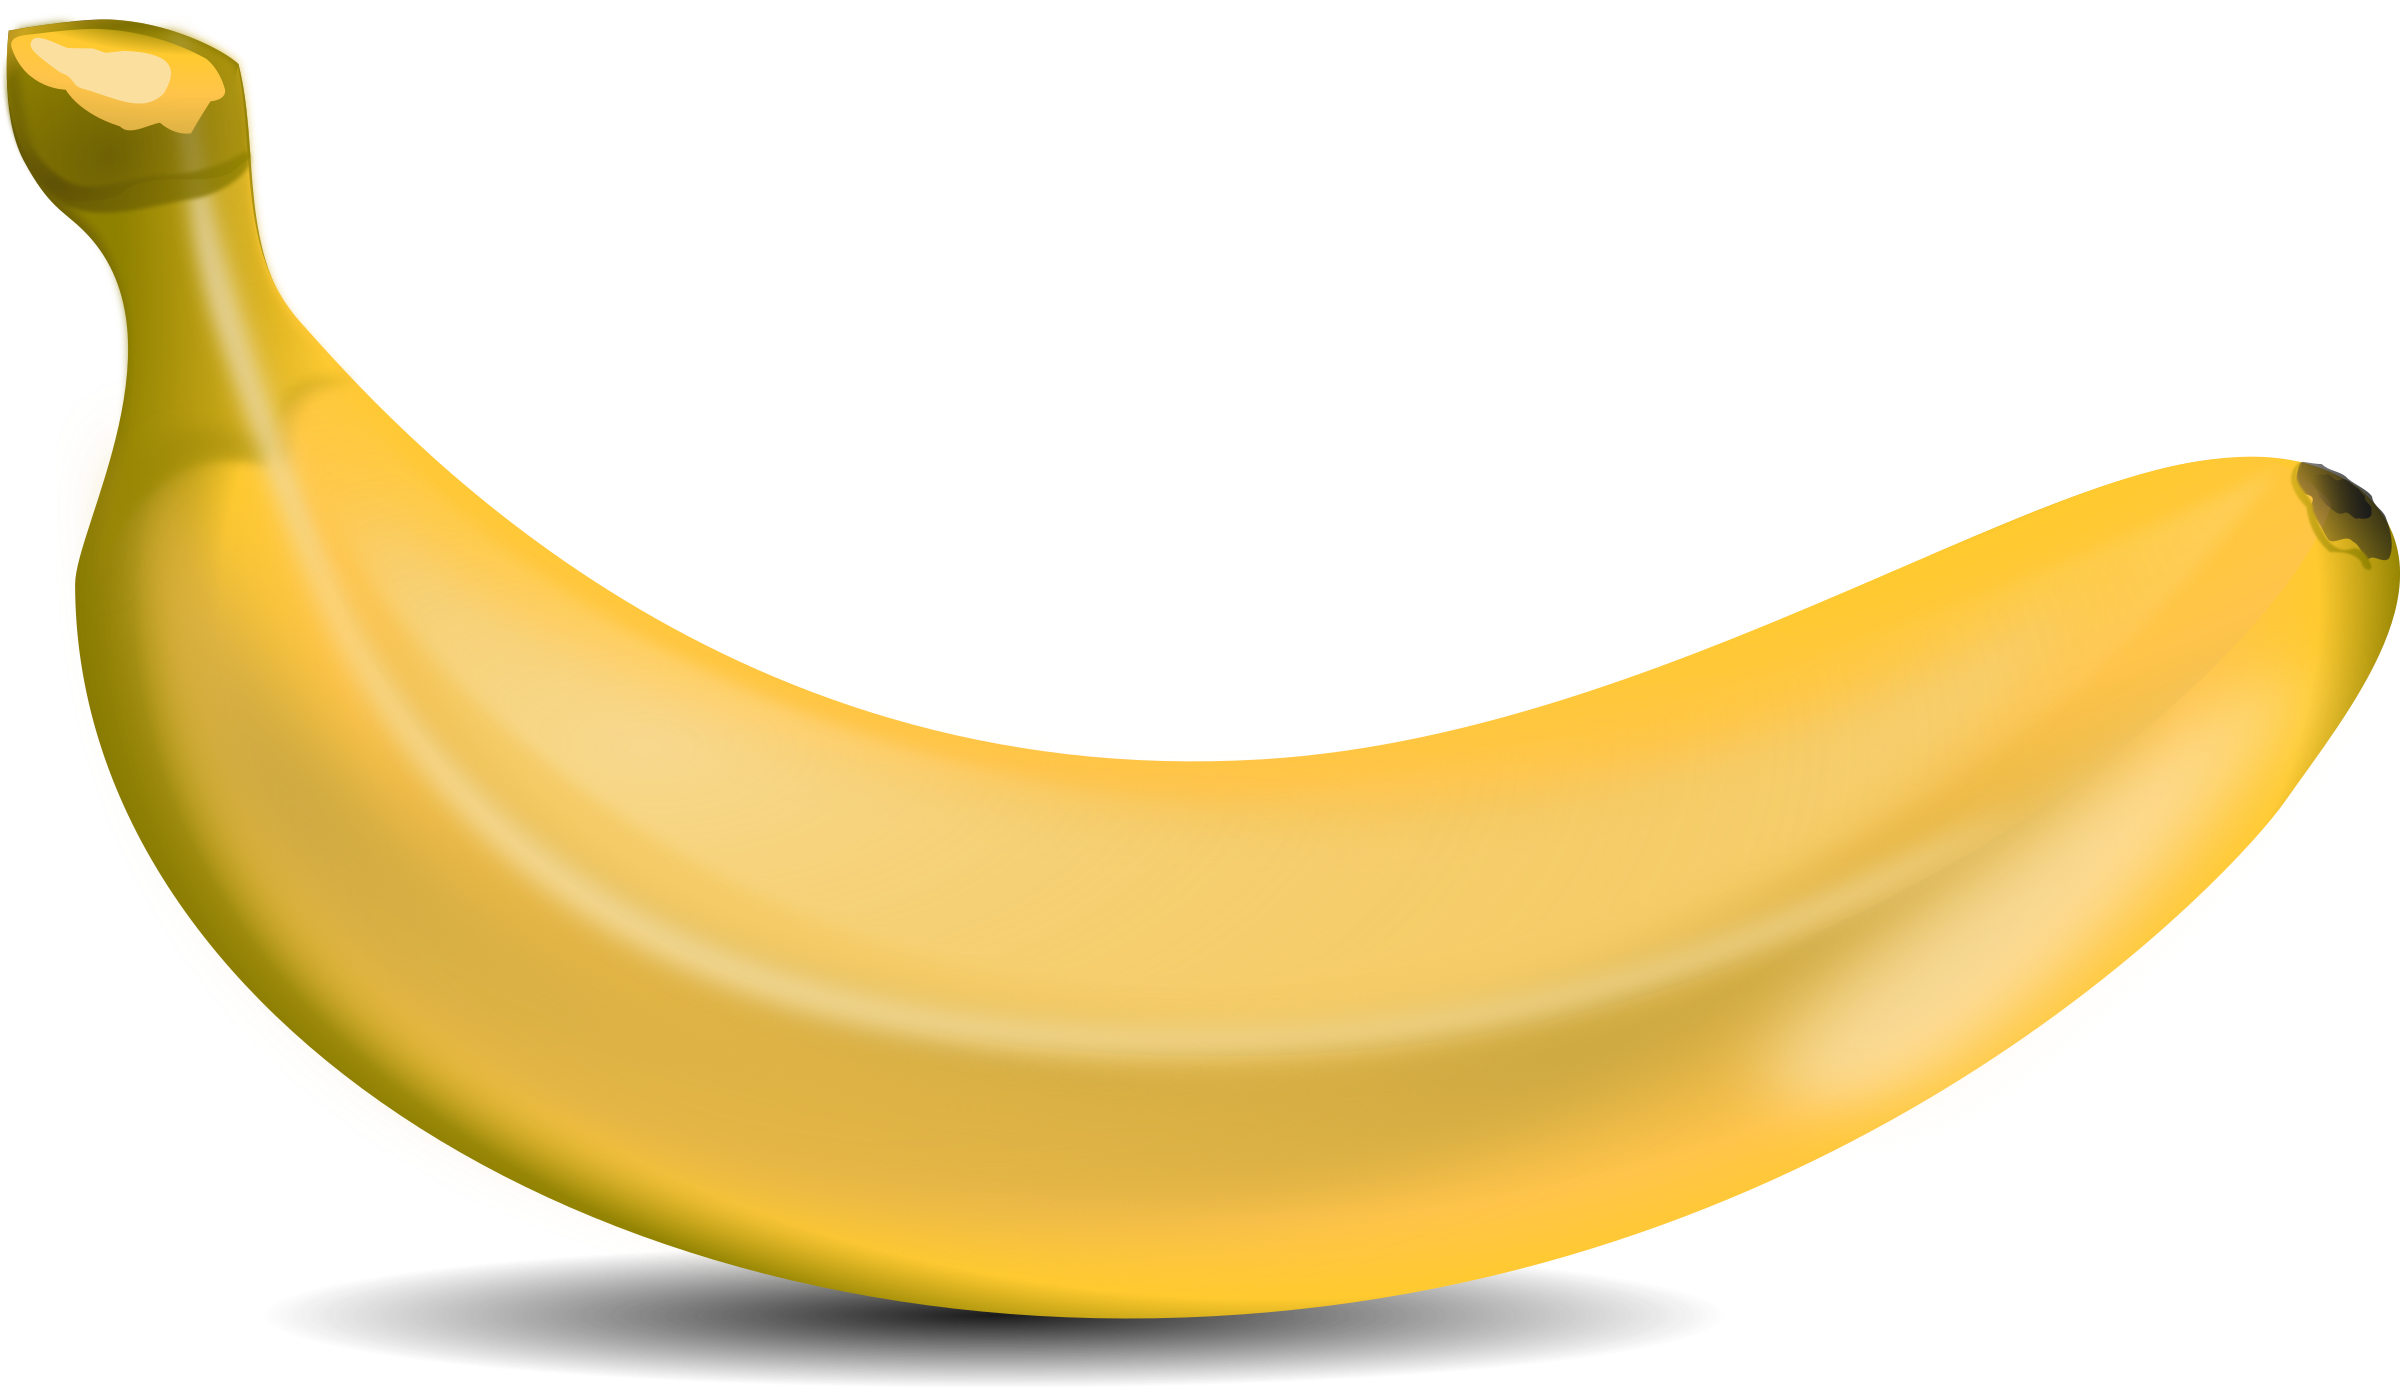 bananas cartton png